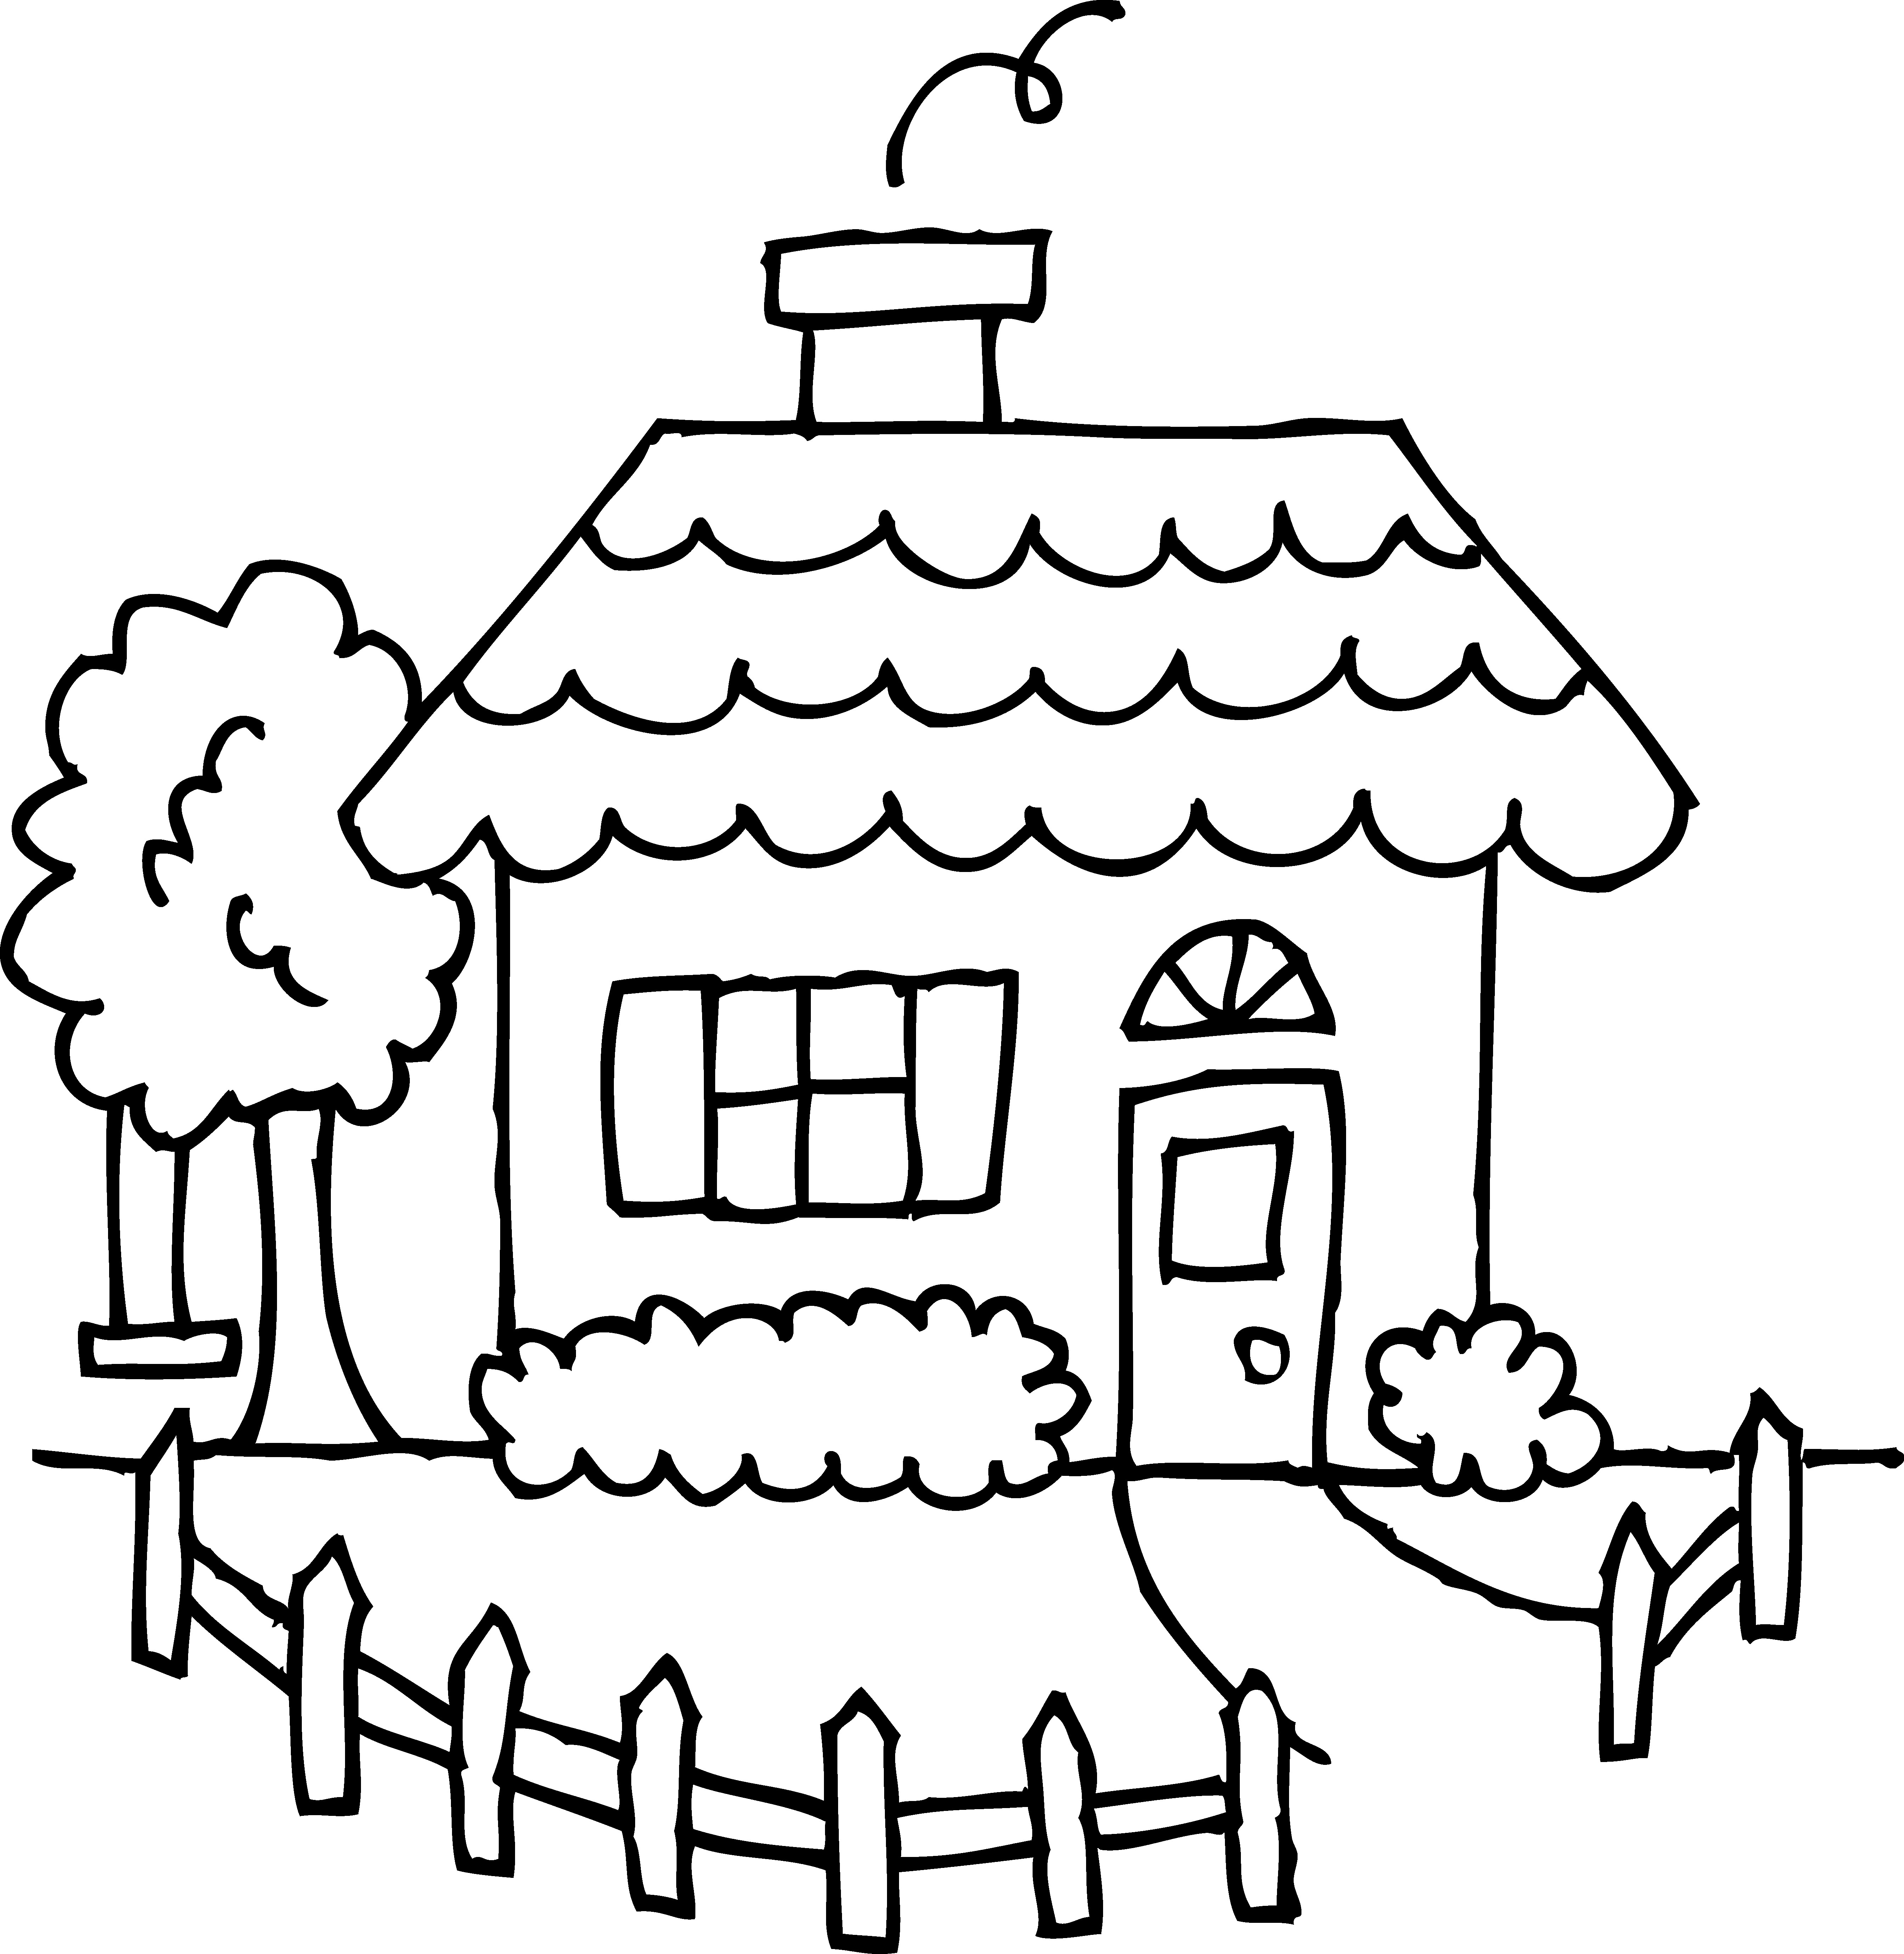 minecraft mansion coloring pages minecraft house coloring pages at getcoloringscom free mansion coloring pages minecraft